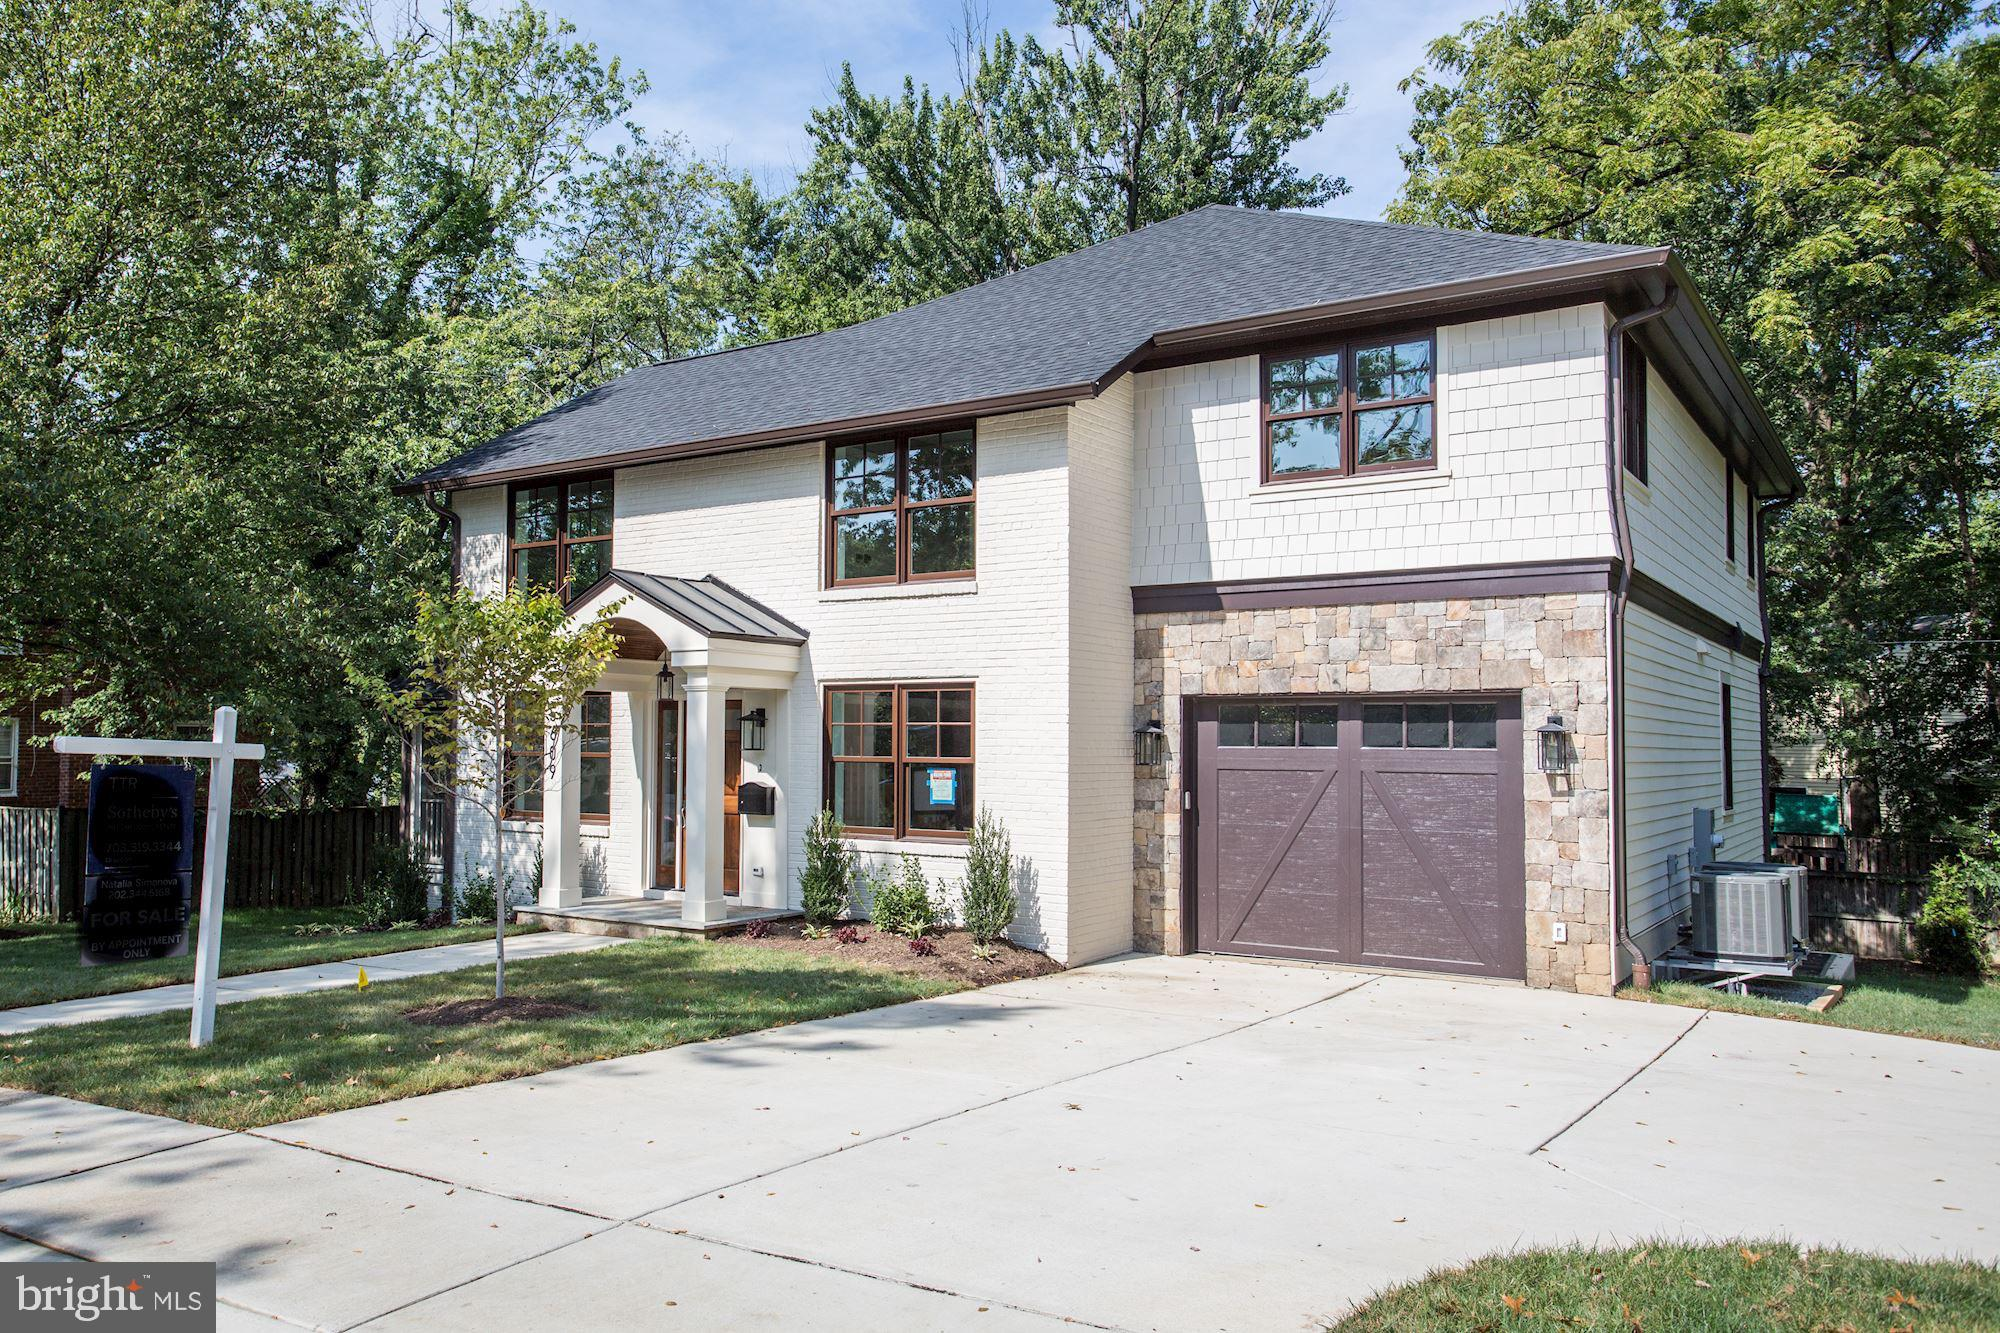 Welcome to this Just completed Craftsman home on a large lot in sought after North Arlington. This 5 Bedrooms, 4 full and 1 half Bathrooms, 1 car garage, approximately 4500 square feet has high end finishes throughout.  Gourmet chef's kitchen with Wolf and Subzero appliances and waterfall edge island opened to a bright family room with modern fireplace. Separate living room and dining room with butler~s pantry.Master bedroom suite with two walk in closets featuring spa like en-suite with luxurious soaking tub, double vanities and radiant floor heating. Hardwood floor throughout the house, screened -in porch of living room.